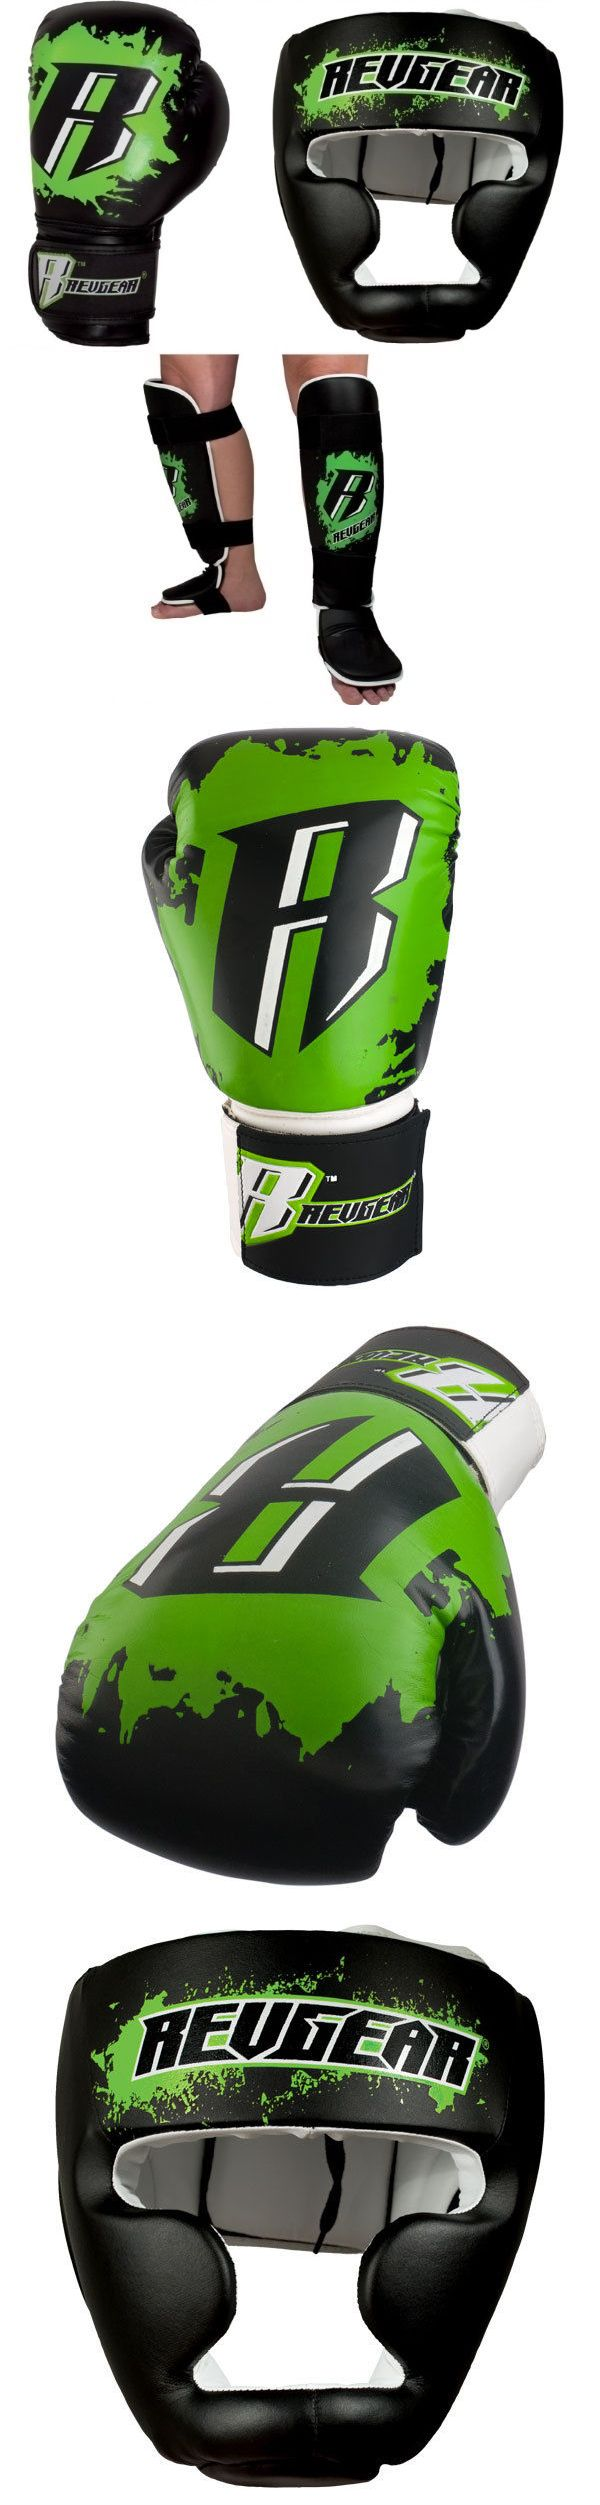 Other Combat Sport Protection 179783: Revgear Youth Boxing Mma Sparring Gear Set - Green BUY IT NOW ONLY: $99.95